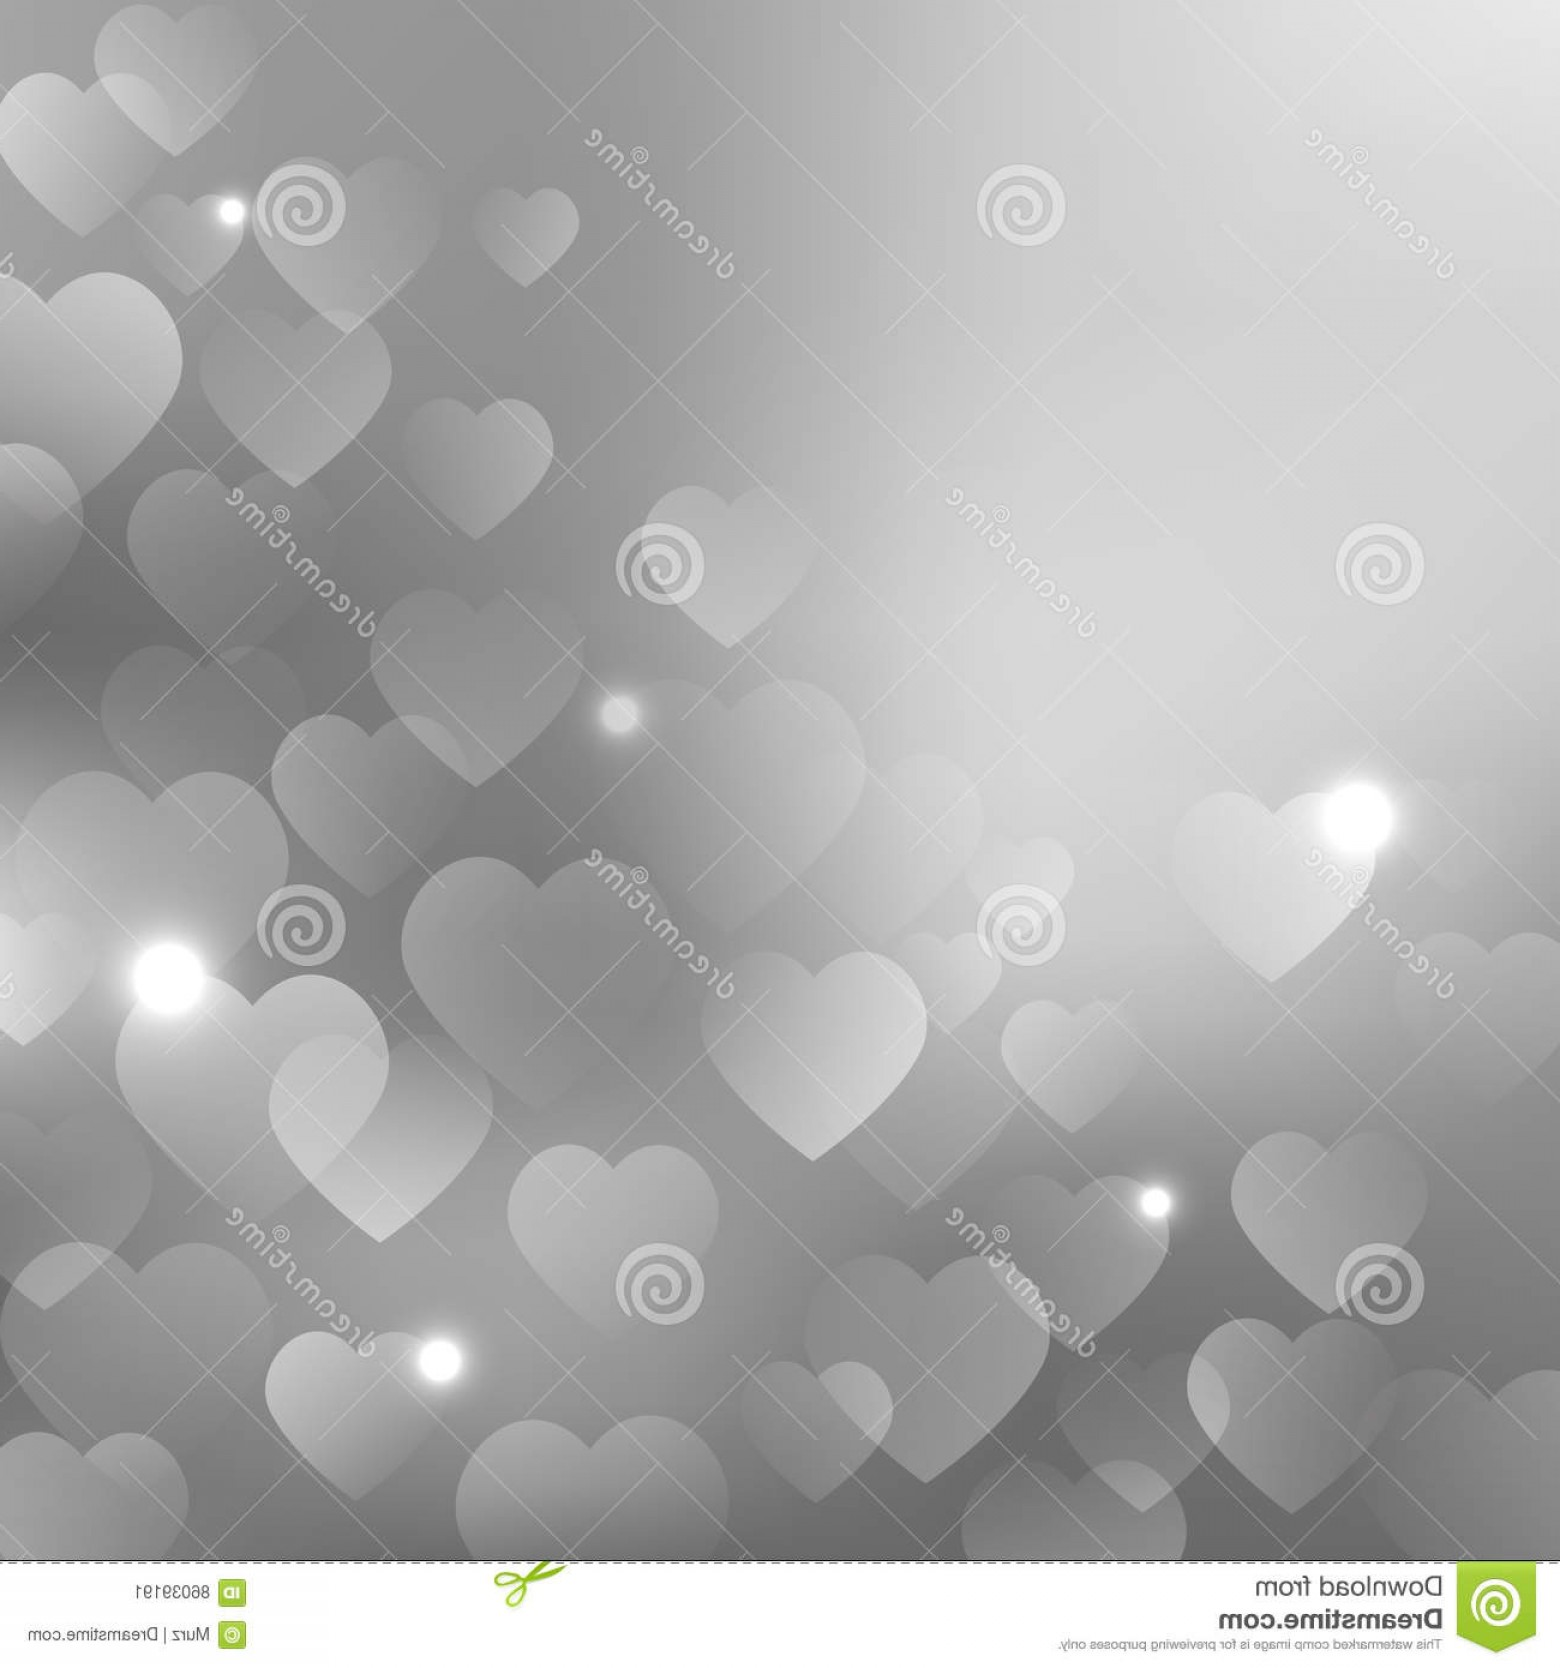 Silver Heart Vector: Stock Illustration Background Silver Hearts Grey Vector Design Your Valentine S Day Cards Flyers Brochures Posters Banners Etc Image